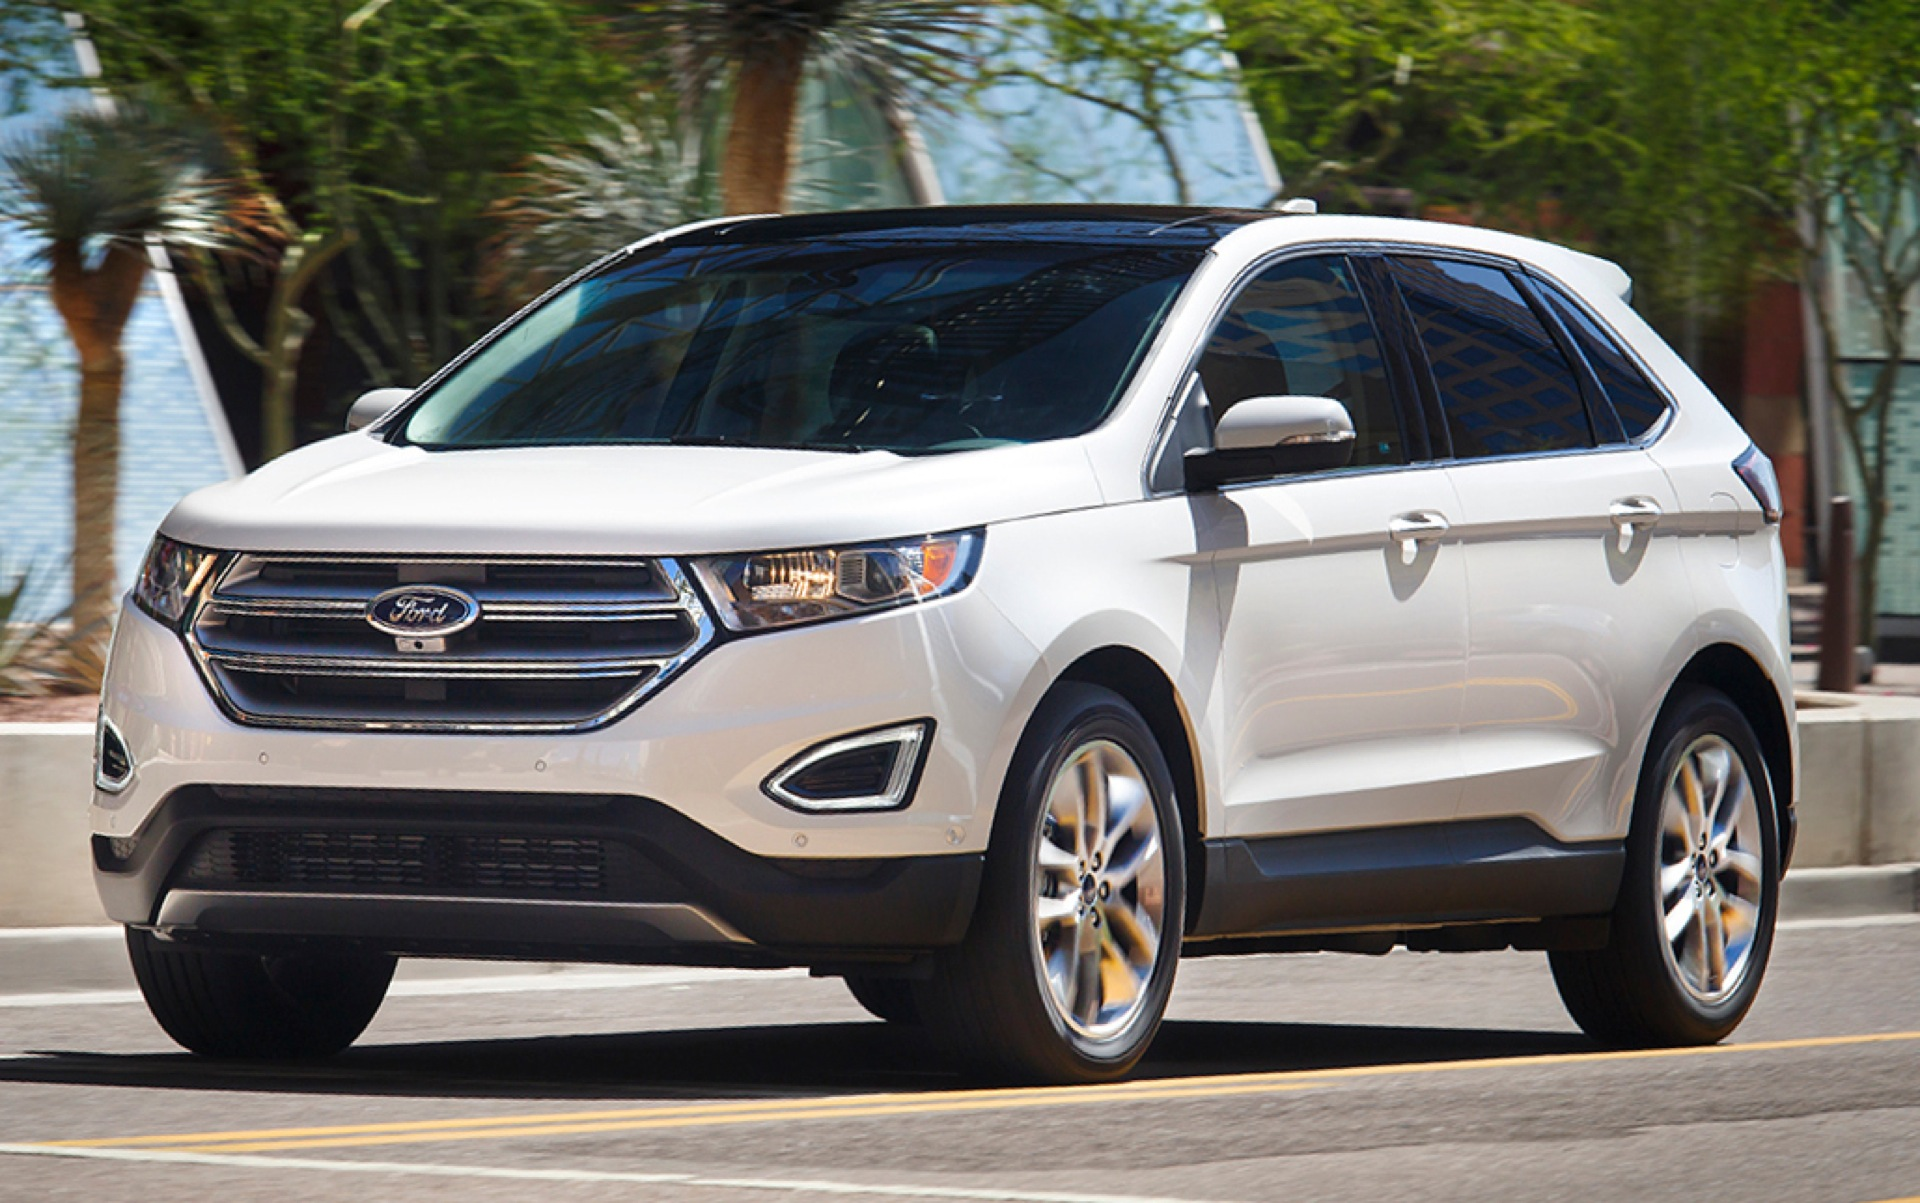 2015 Ford Edge Review, Ratings, Specs, Prices, and Photos - The Car Connection